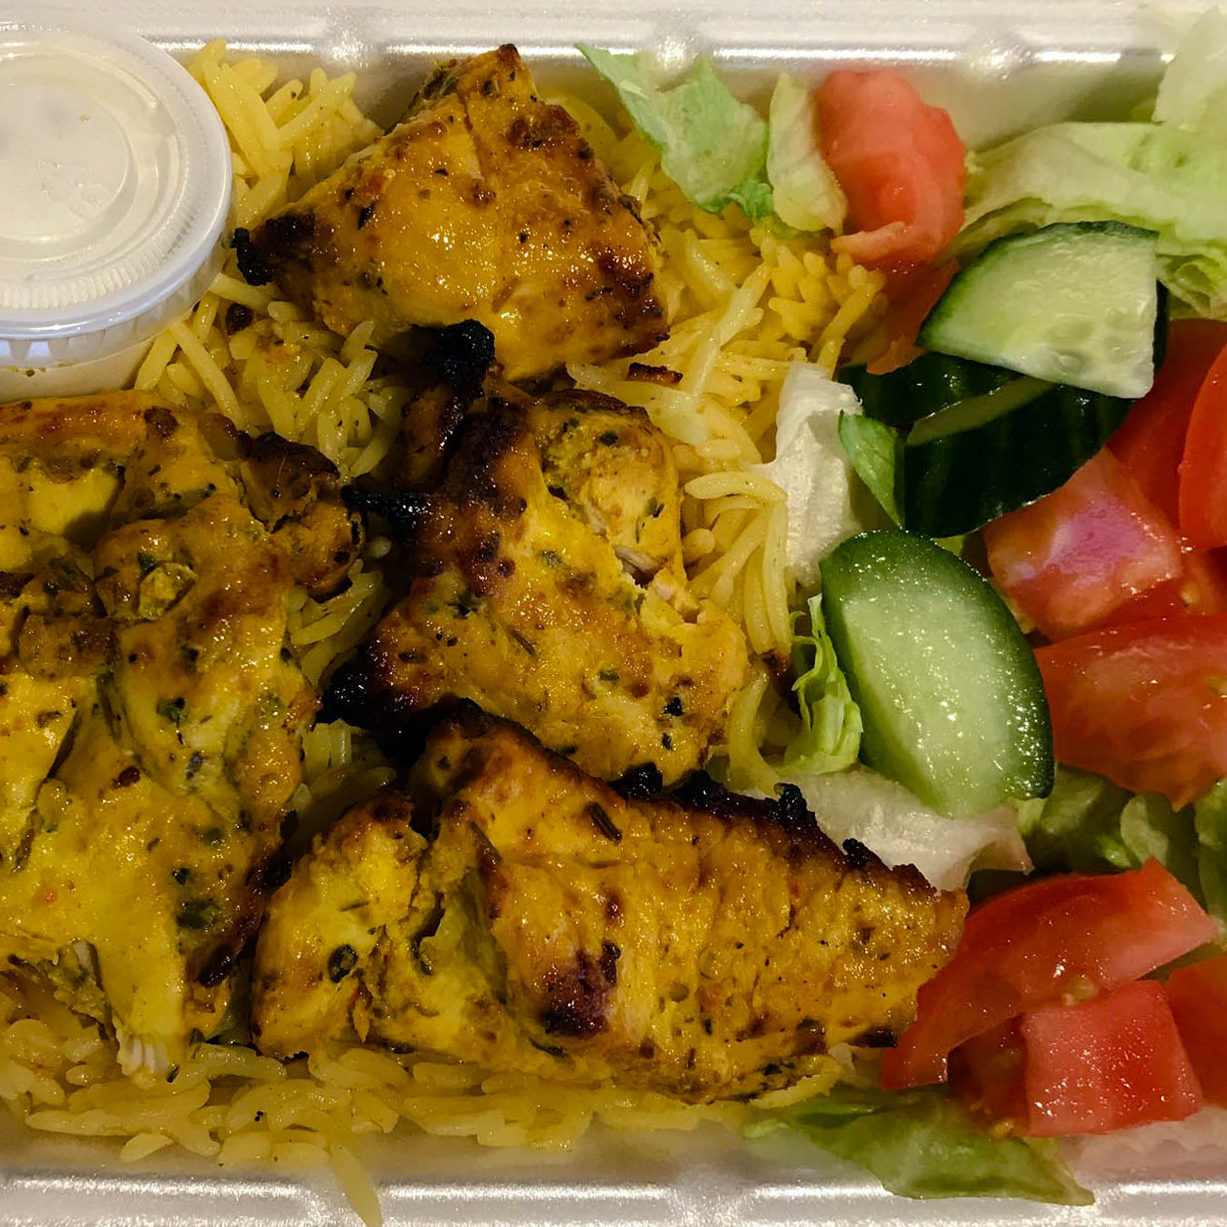 EPIC PITA CATERING CHICKEN RICE TO GO SALAD GRILLED BBQ TASTY